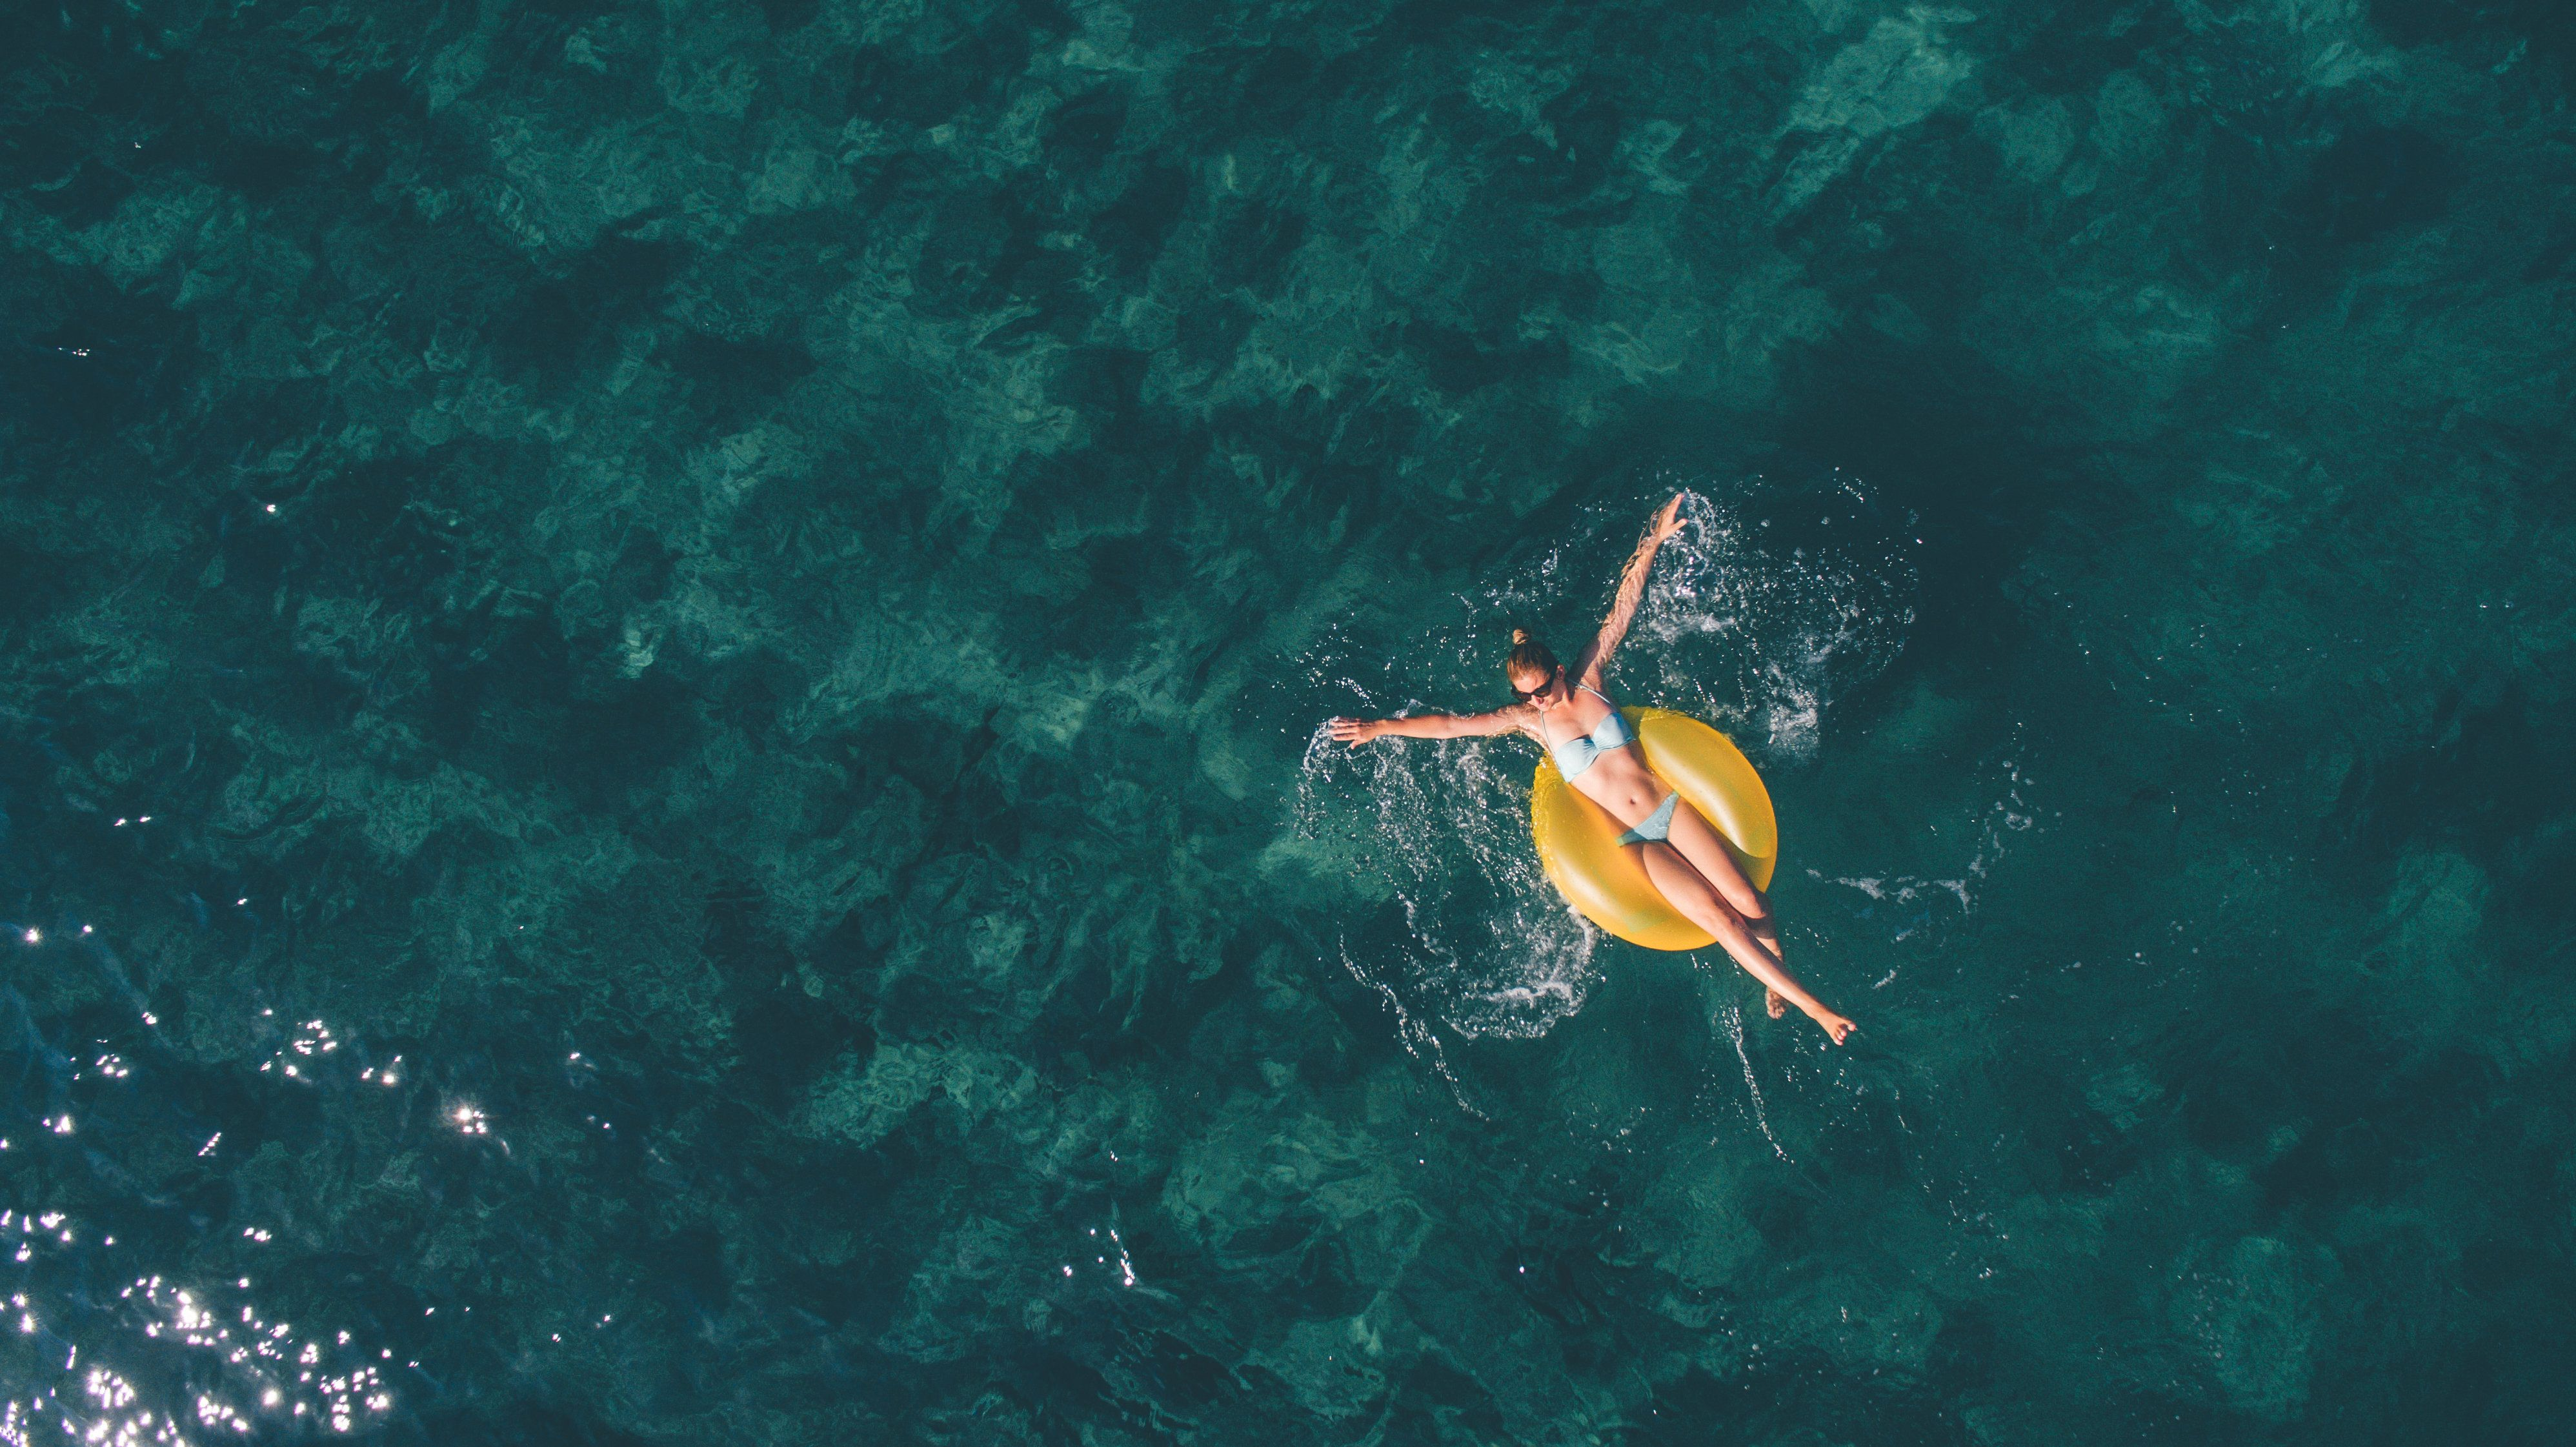 High angle view photo of a young woman relaxing while floating in the ocean using swimming tube; wide photo dimensions